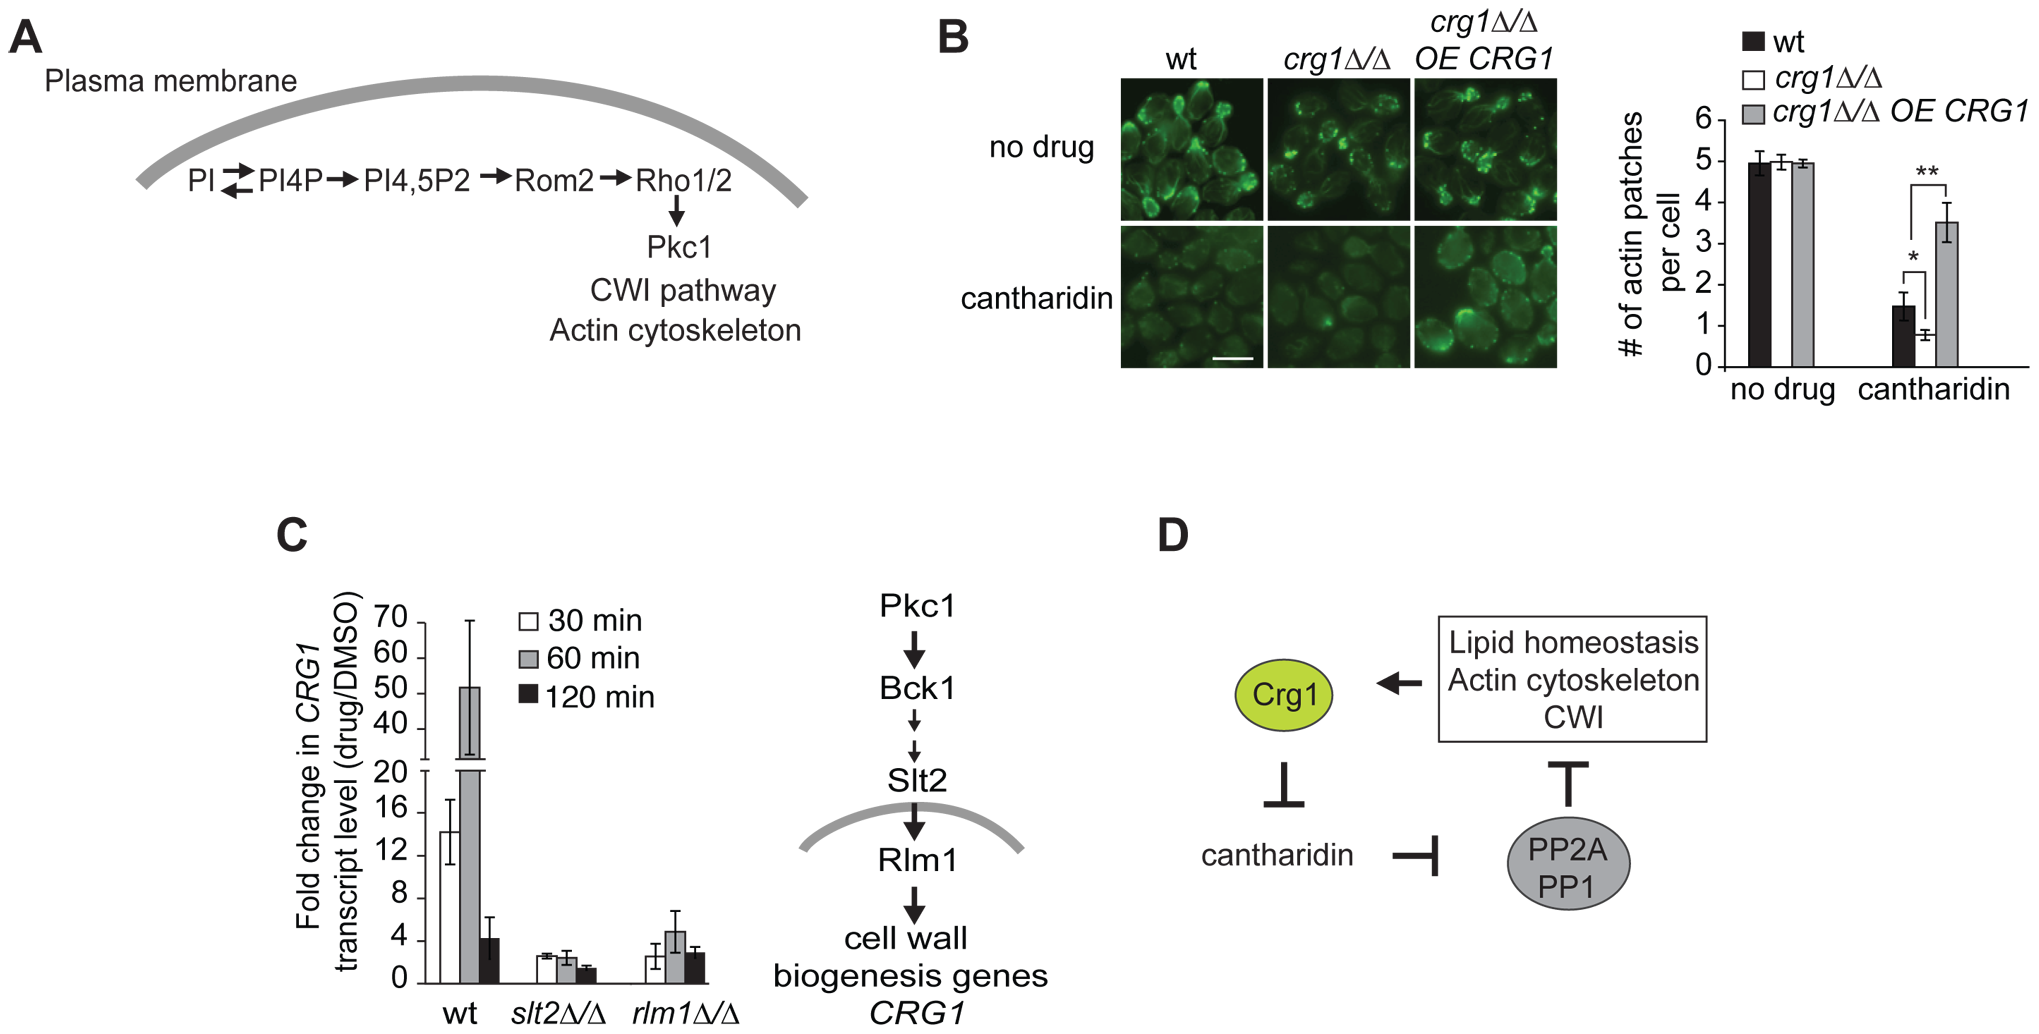 Crg1 is important for actin patch formation during cantharidin treatment.